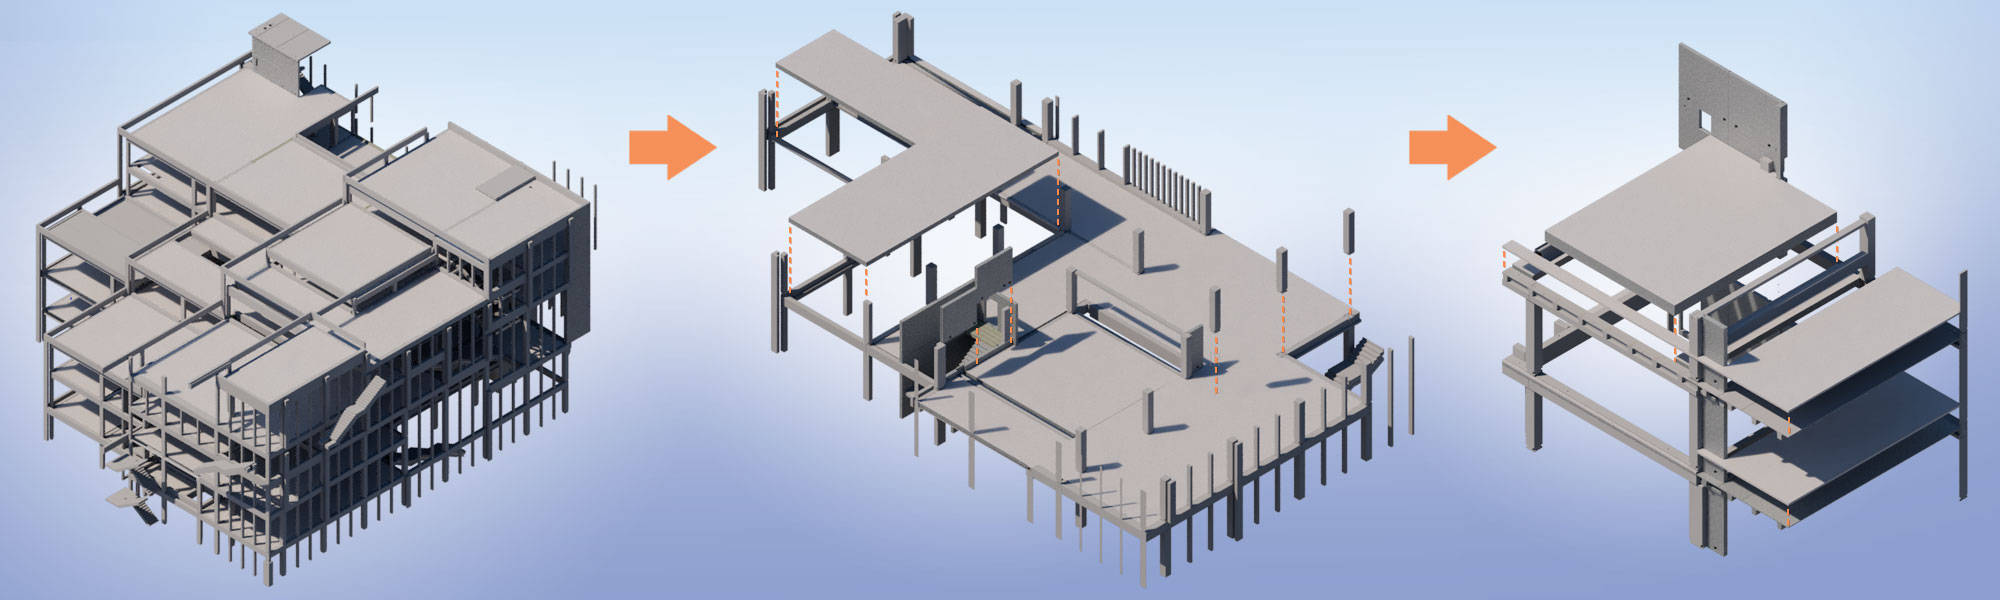 PCEs bespoke system construction approach